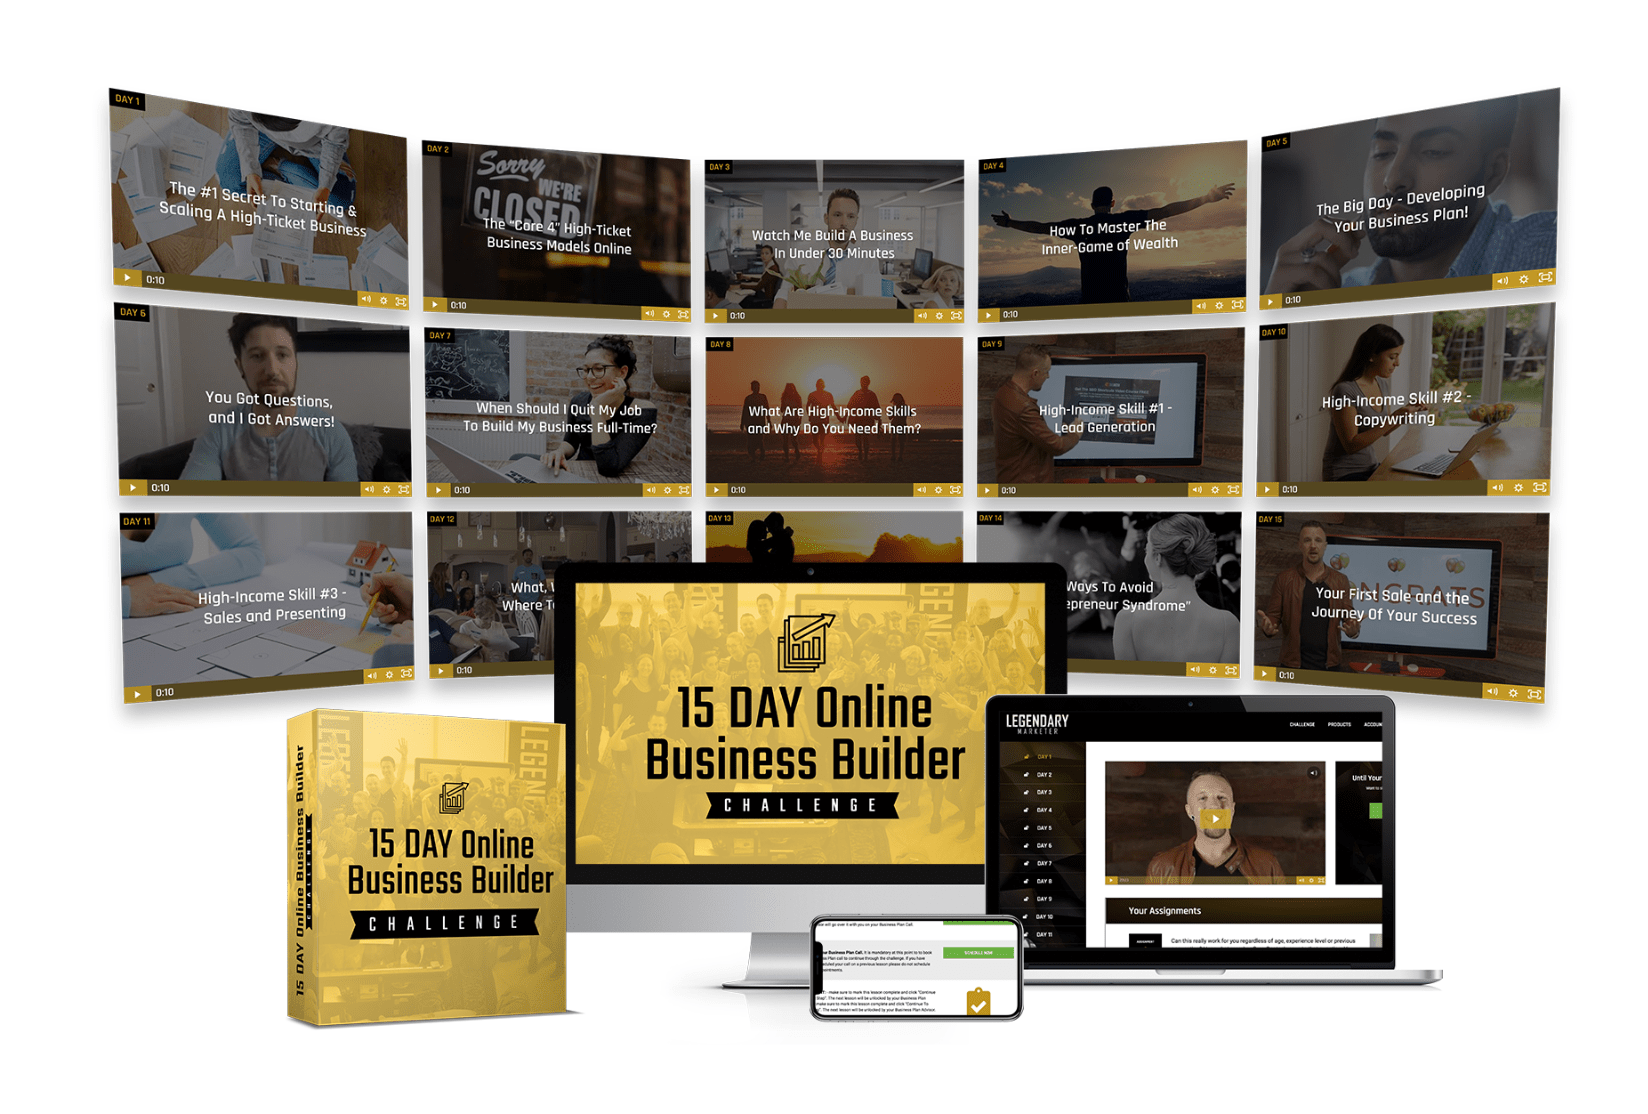 Youtube Quality Internet Marketing Program Legendary Marketer